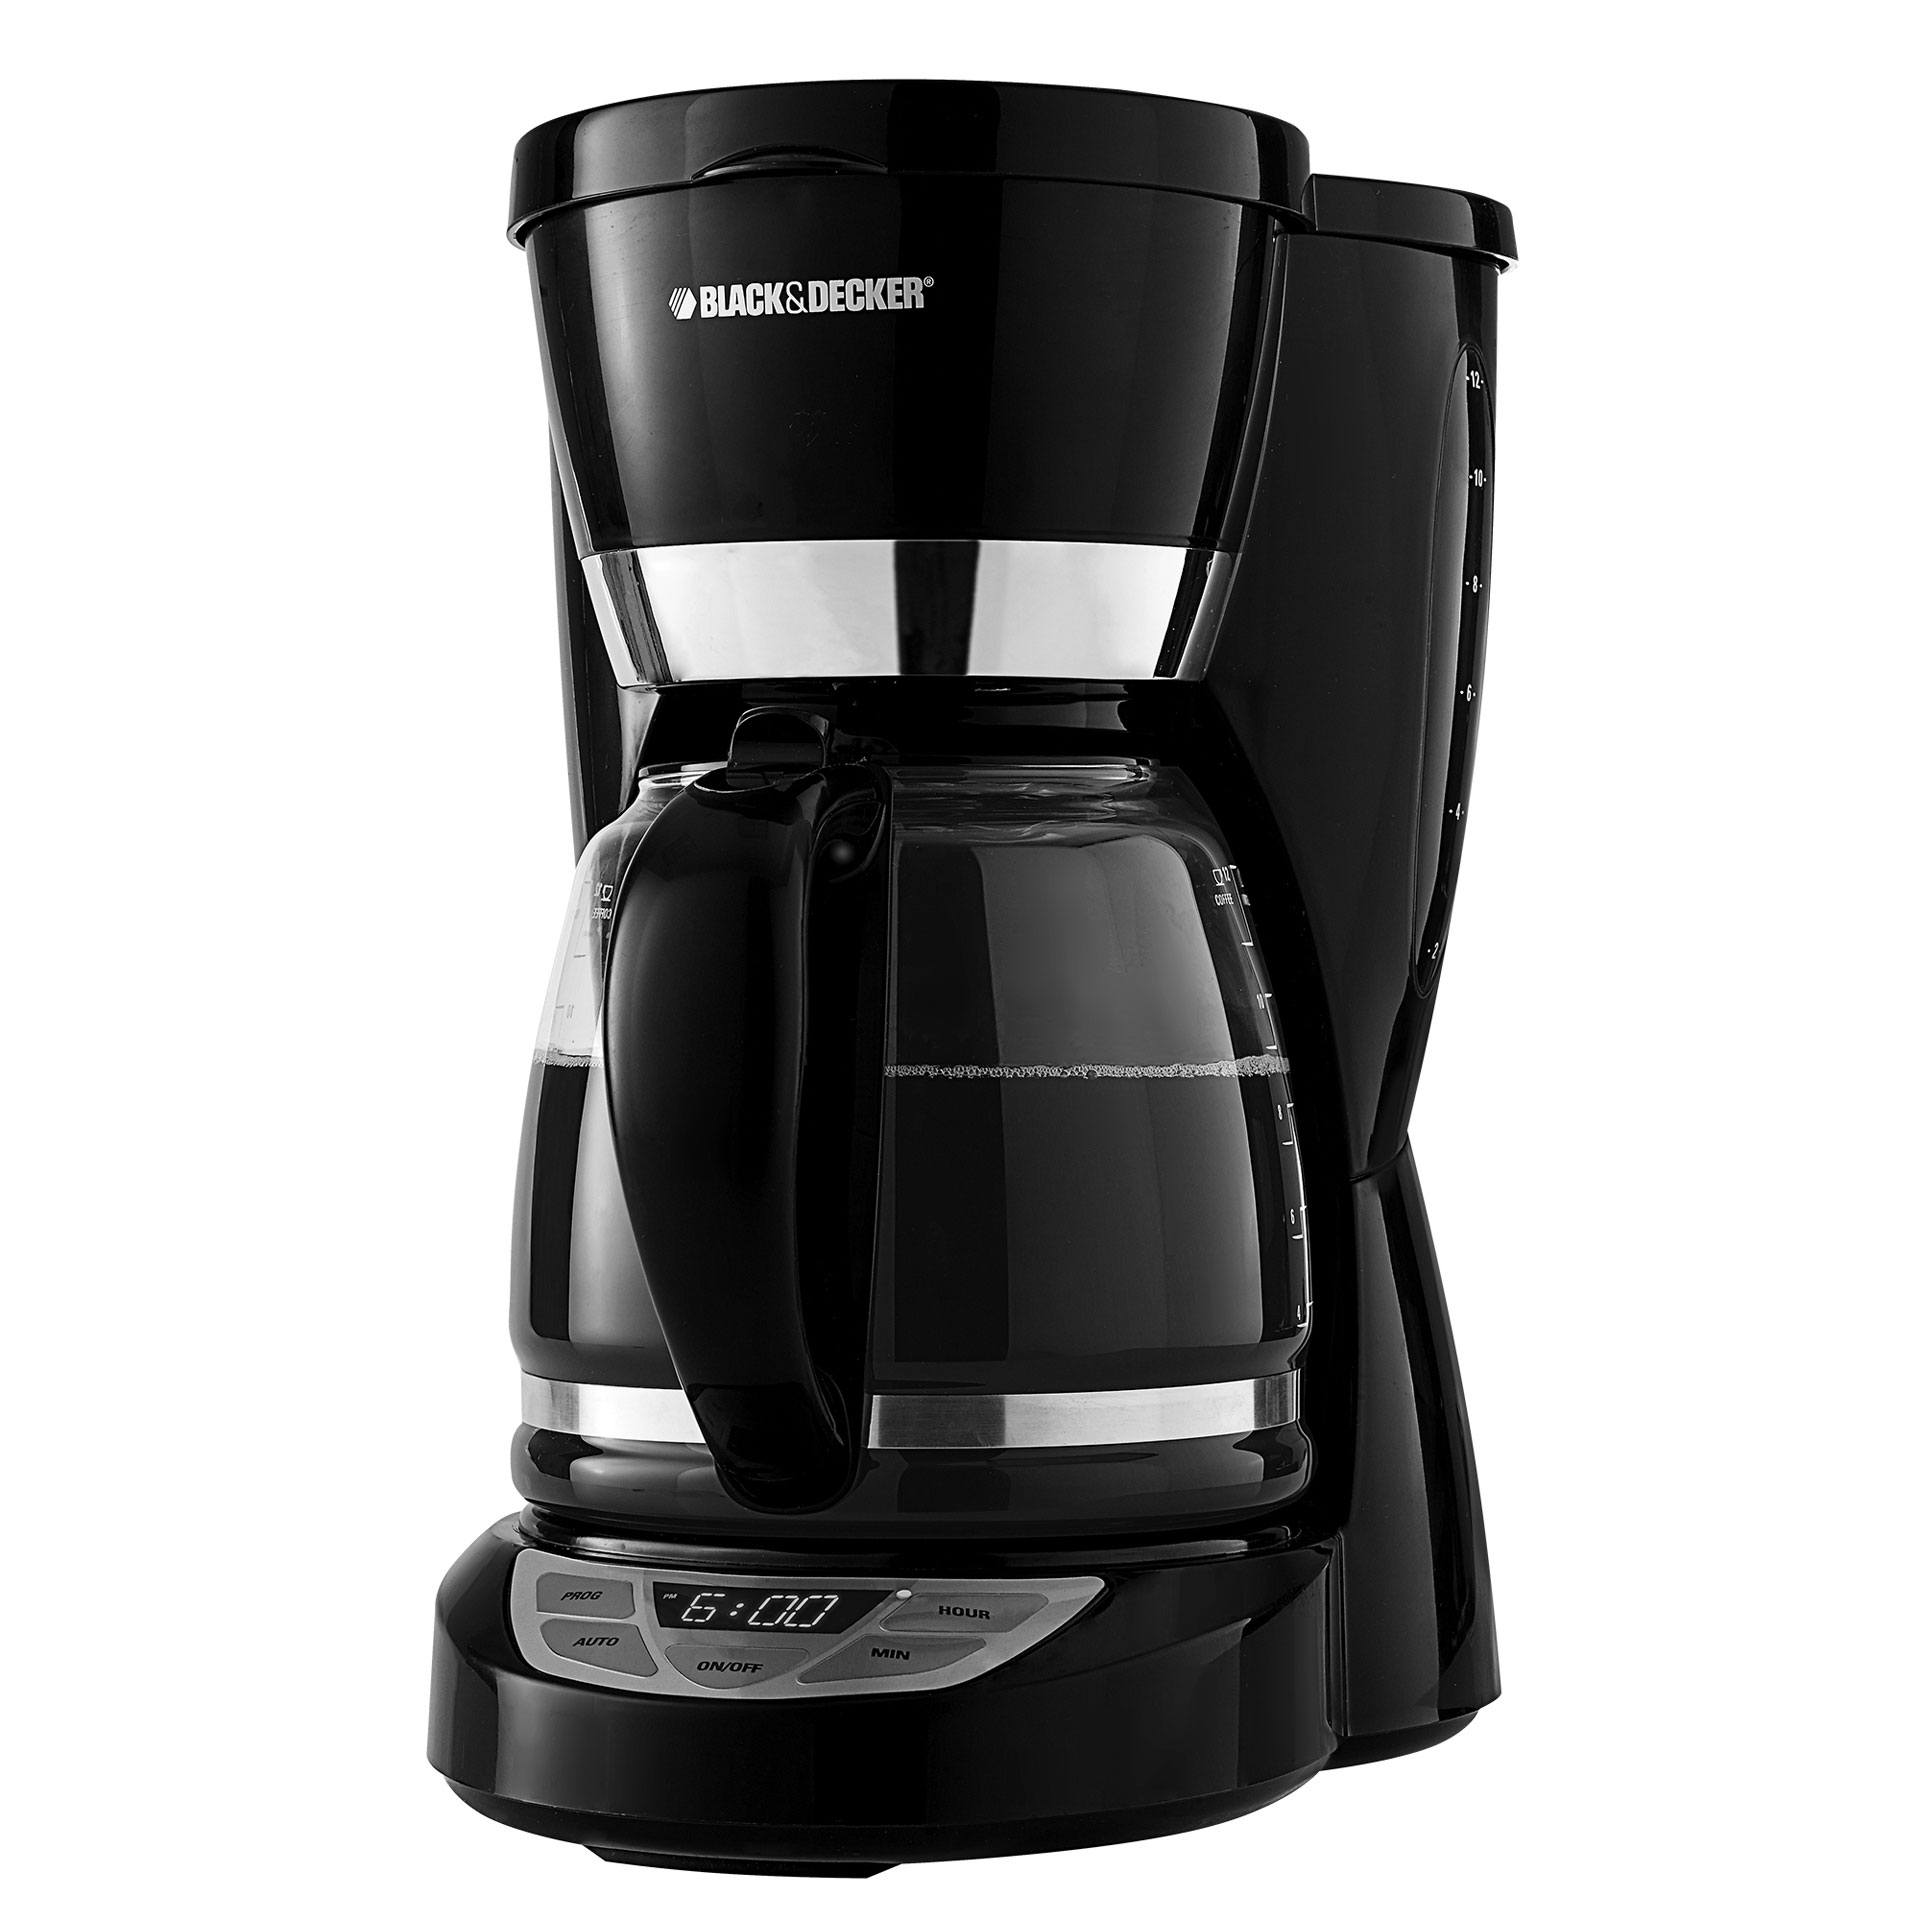 Black And Decker Coffee Maker Spring : Black & Decker 12-Cup Programmable Coffee Maker #CM1050B Review